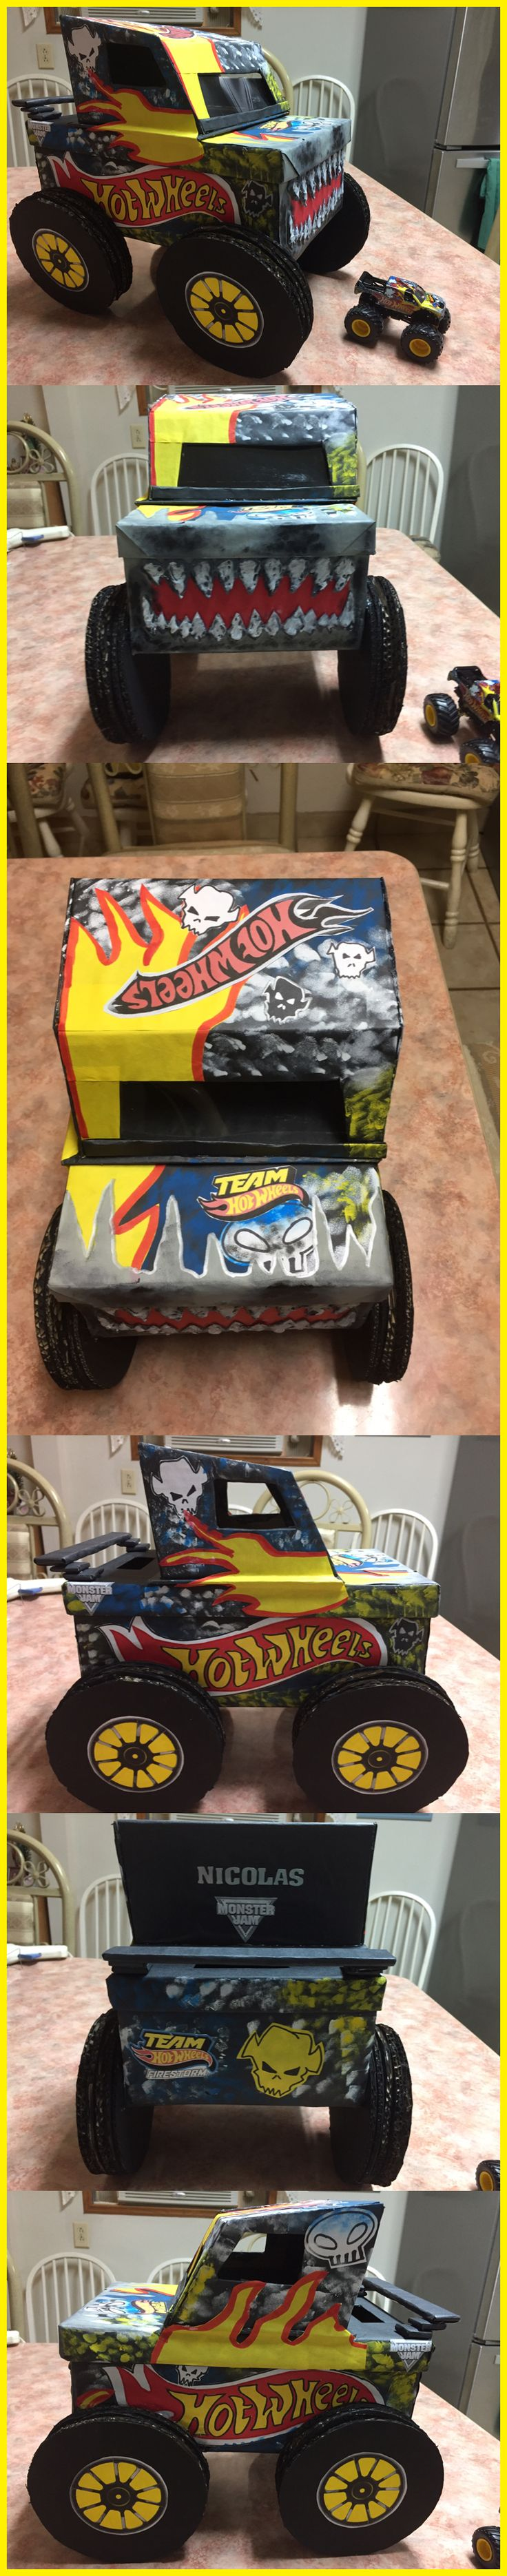 Craft box on wheels - Valentines Box Monster Truck Team Hot Wheels